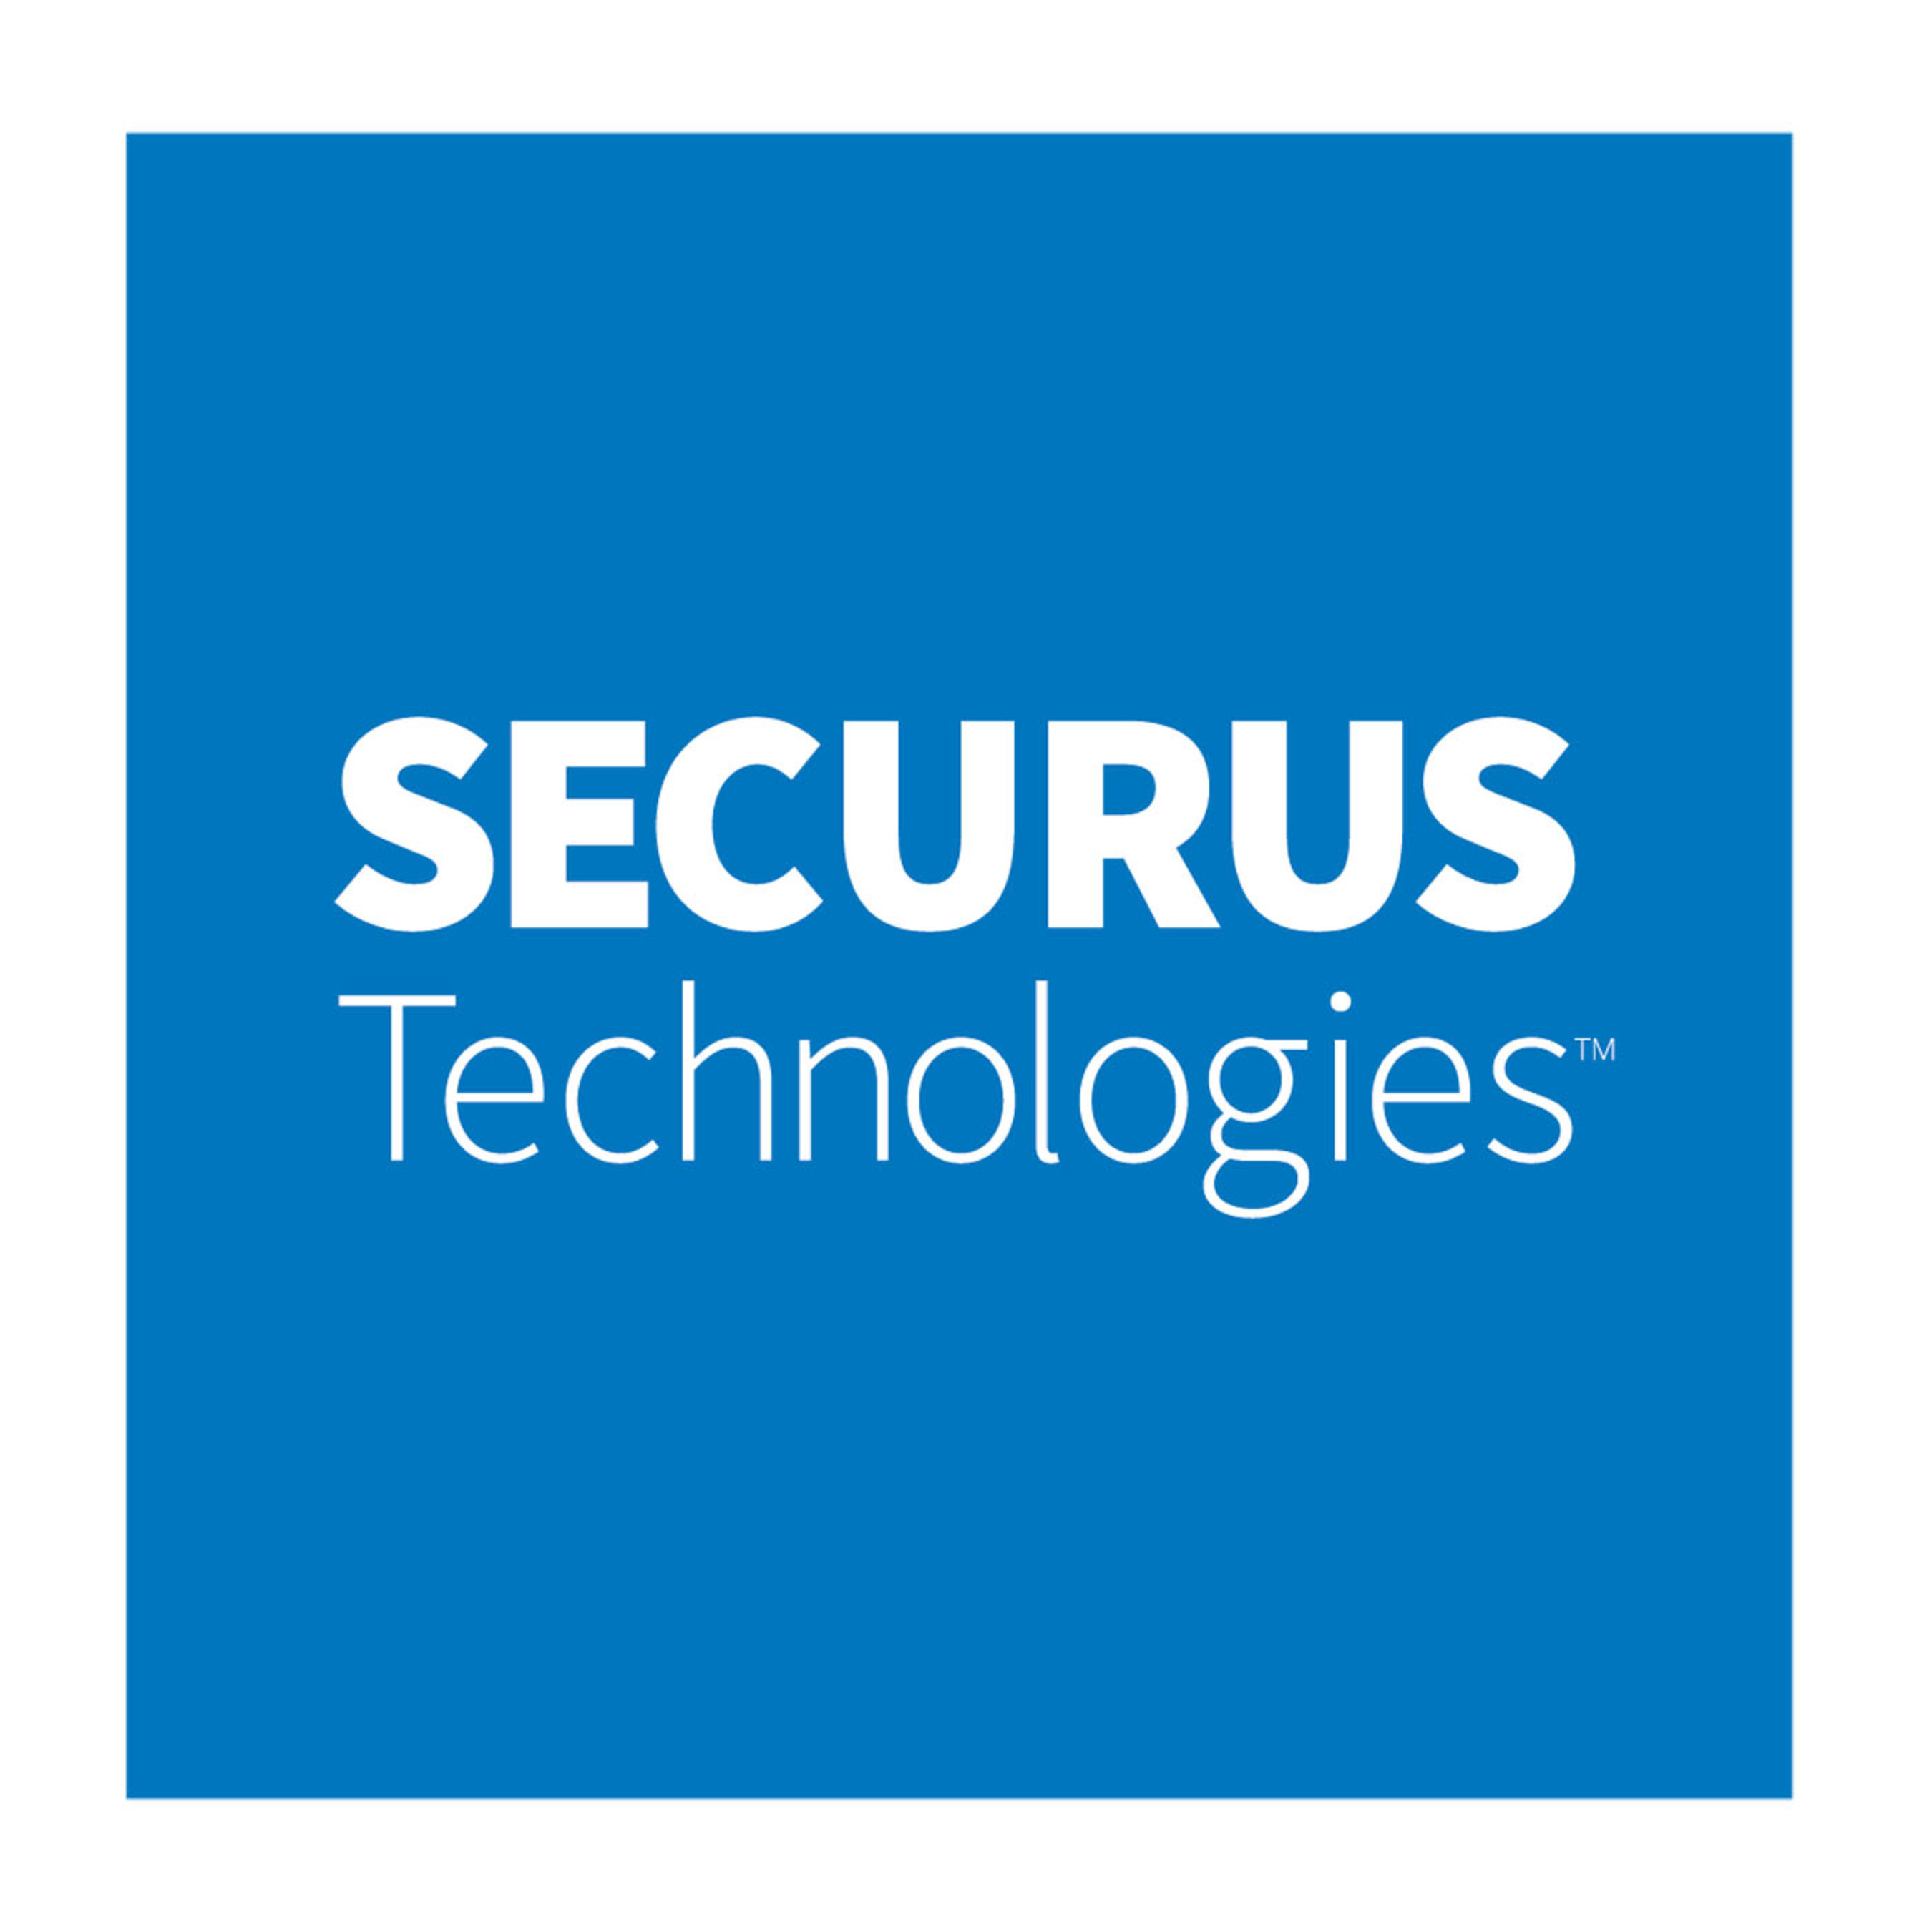 Securus Technologies Purchases Guarded Exchange, LLC